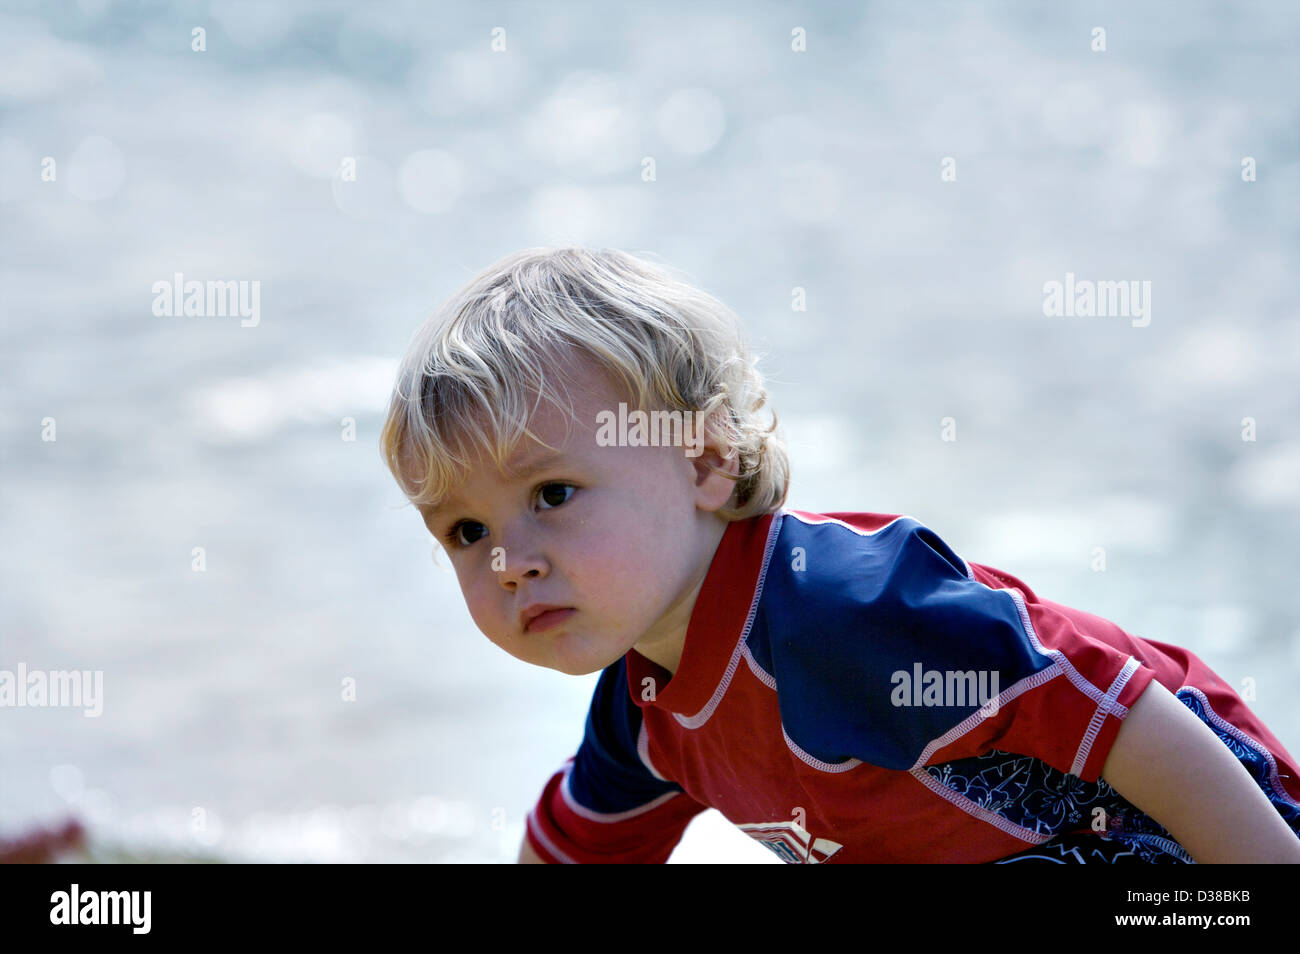 A small boy playing on the beach wearing a red and navy sun suit to protect him from the suns rays - Stock Image